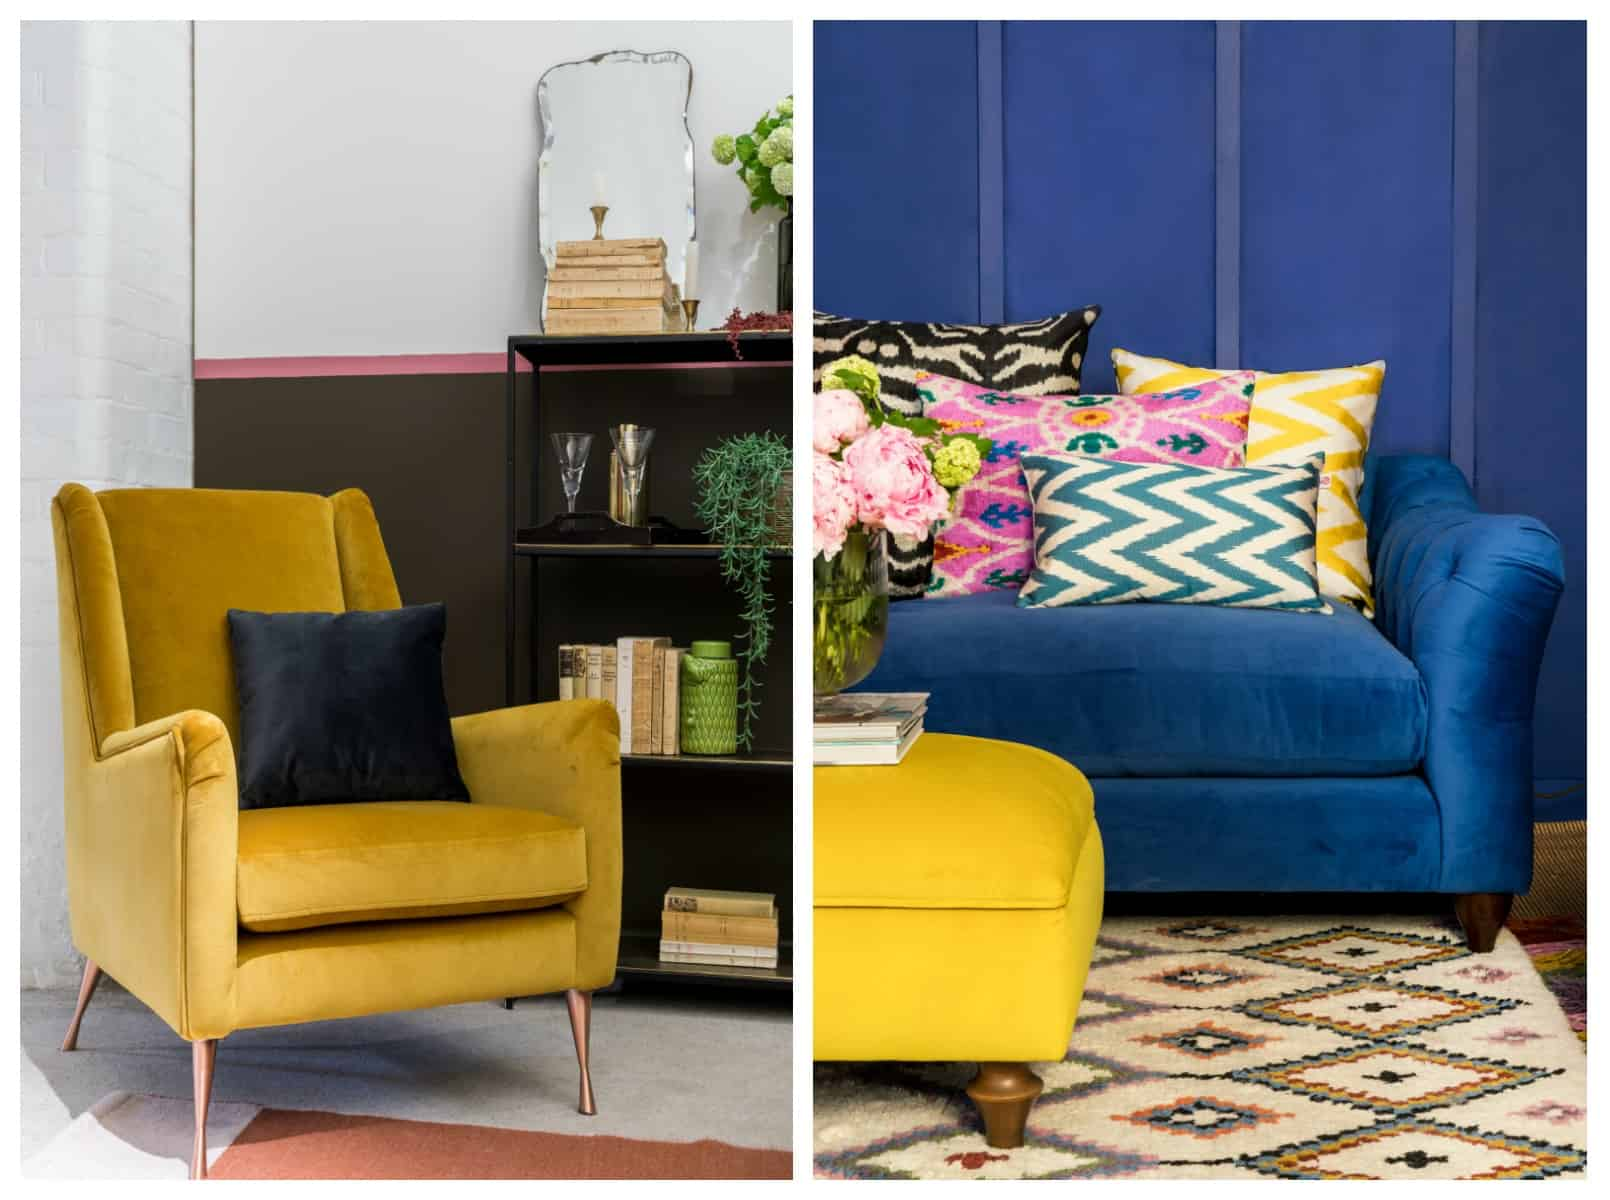 DFS House of Colour - helping the British public create more colourful homes